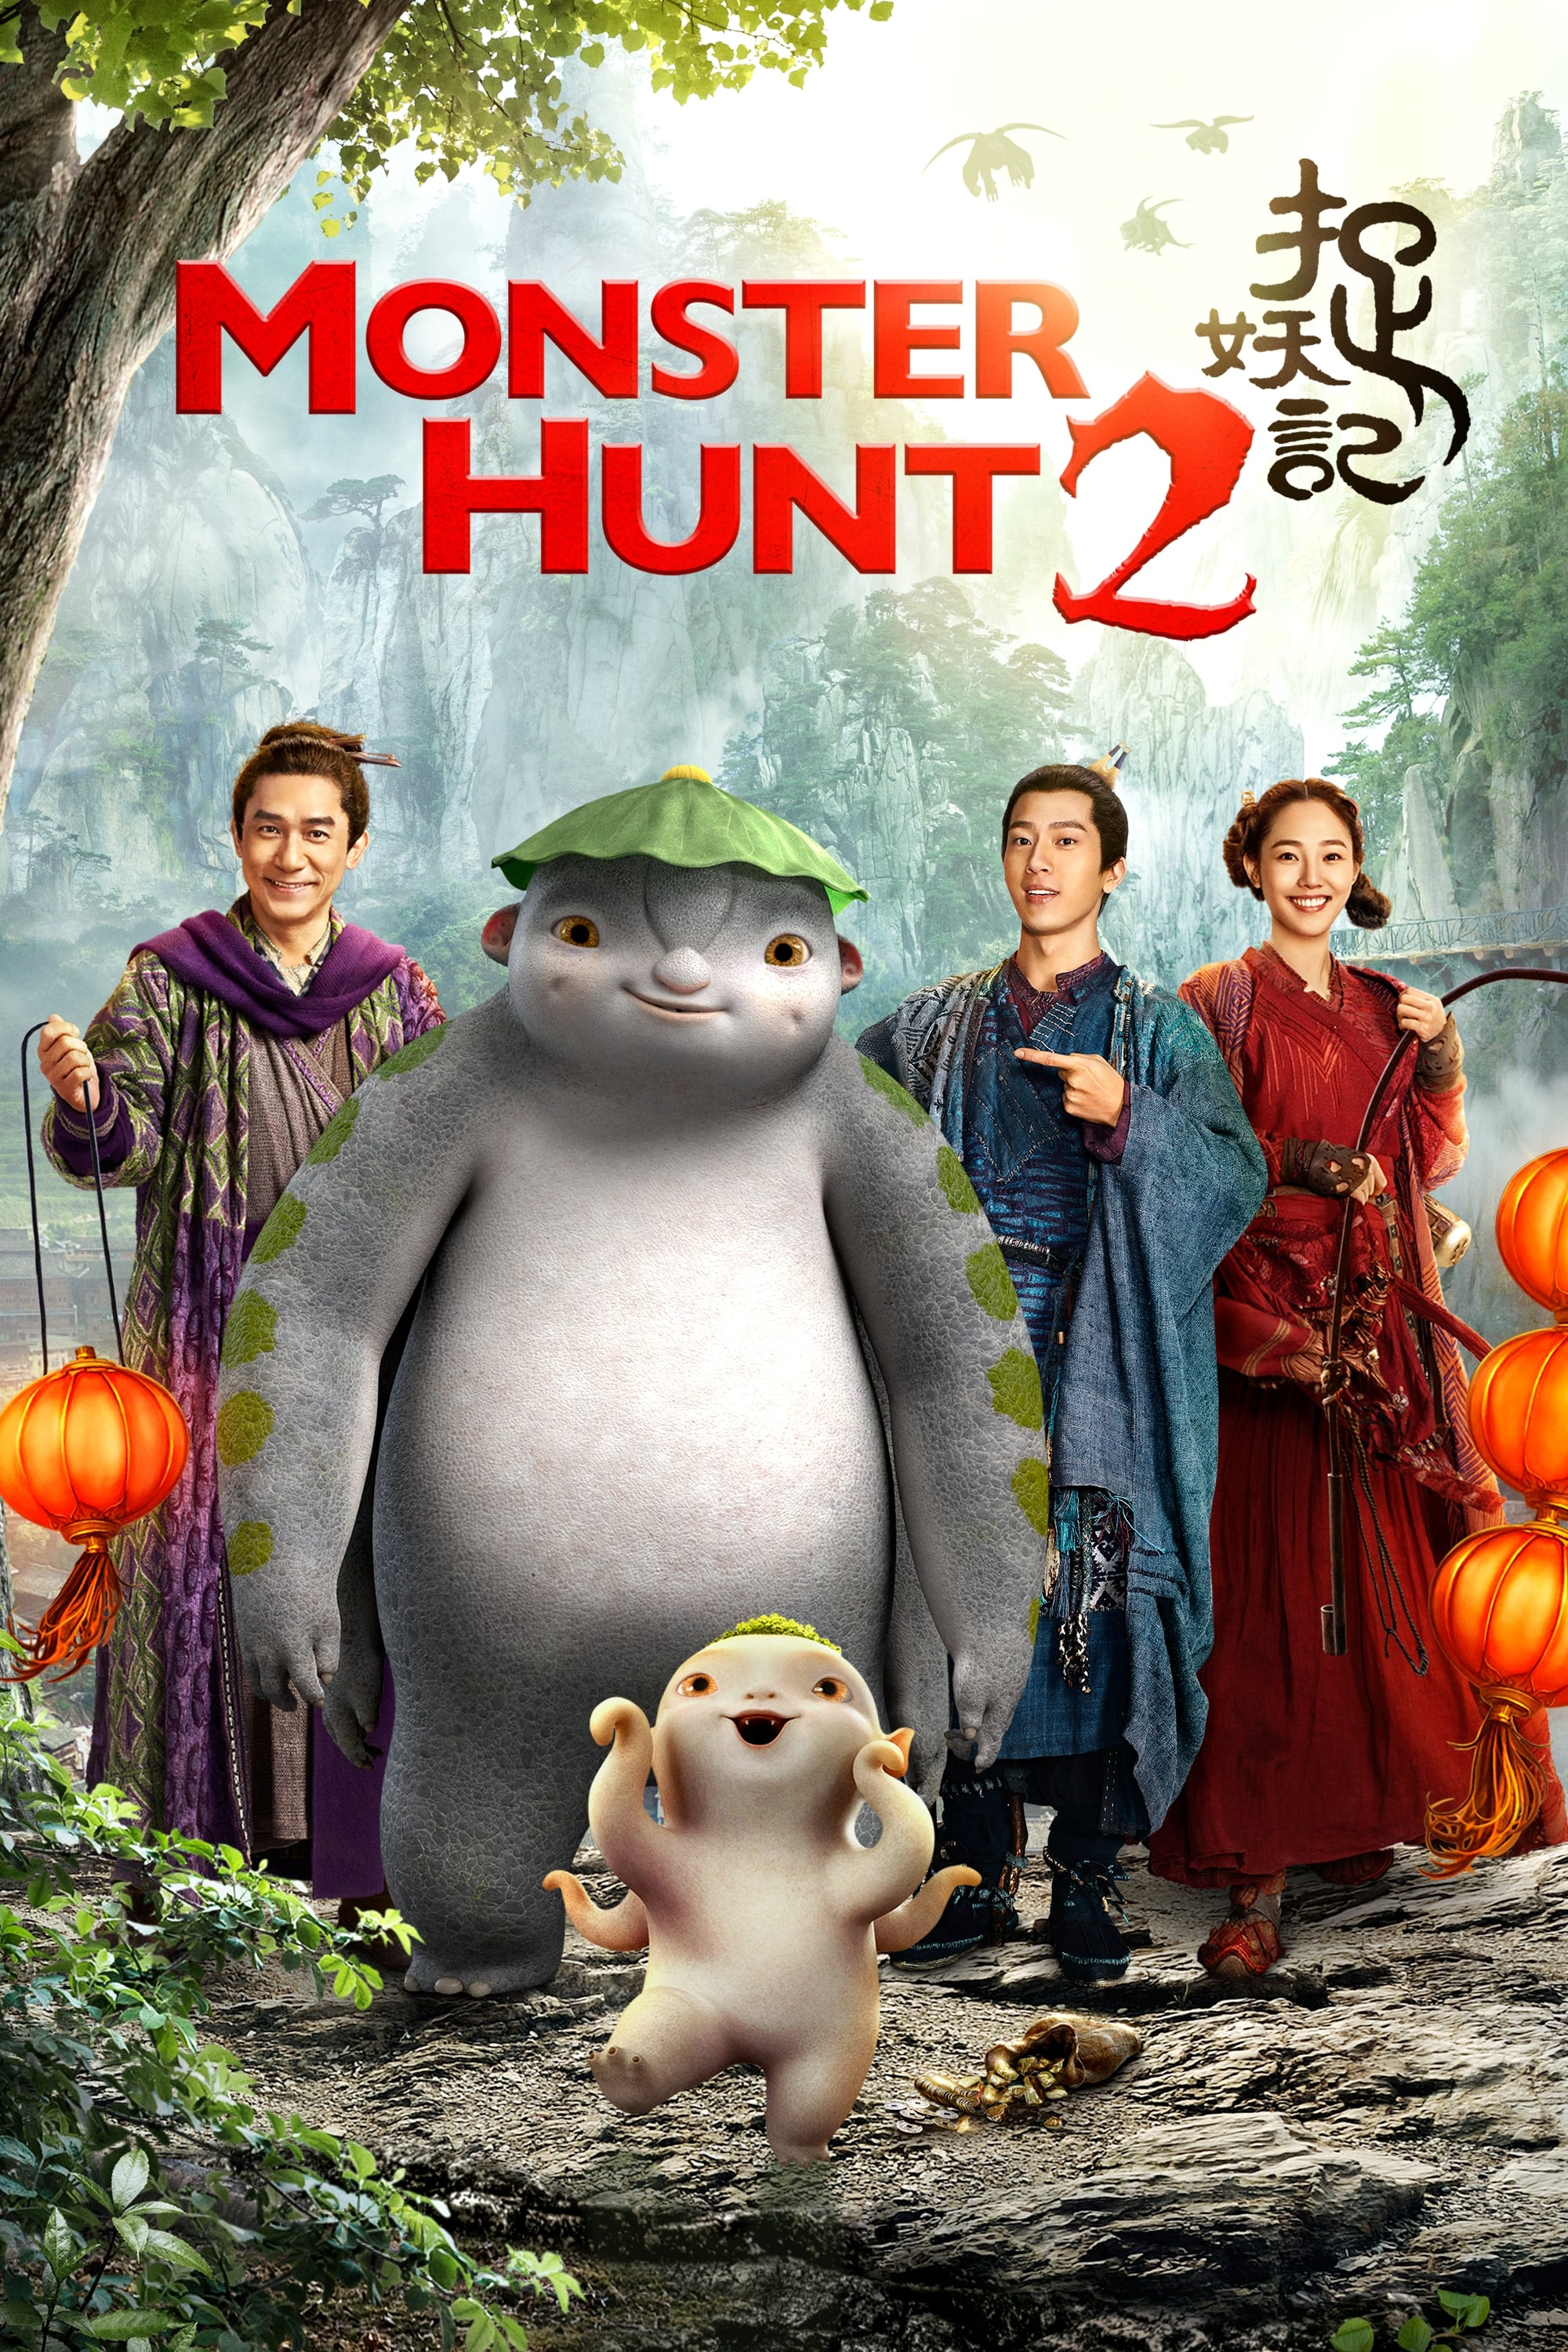 Monster Hunt 2 (2018) 720p BluRay x264 ESubs AC3 Dual Audio [Hindi DD2.0 + Chinese DD2.0]